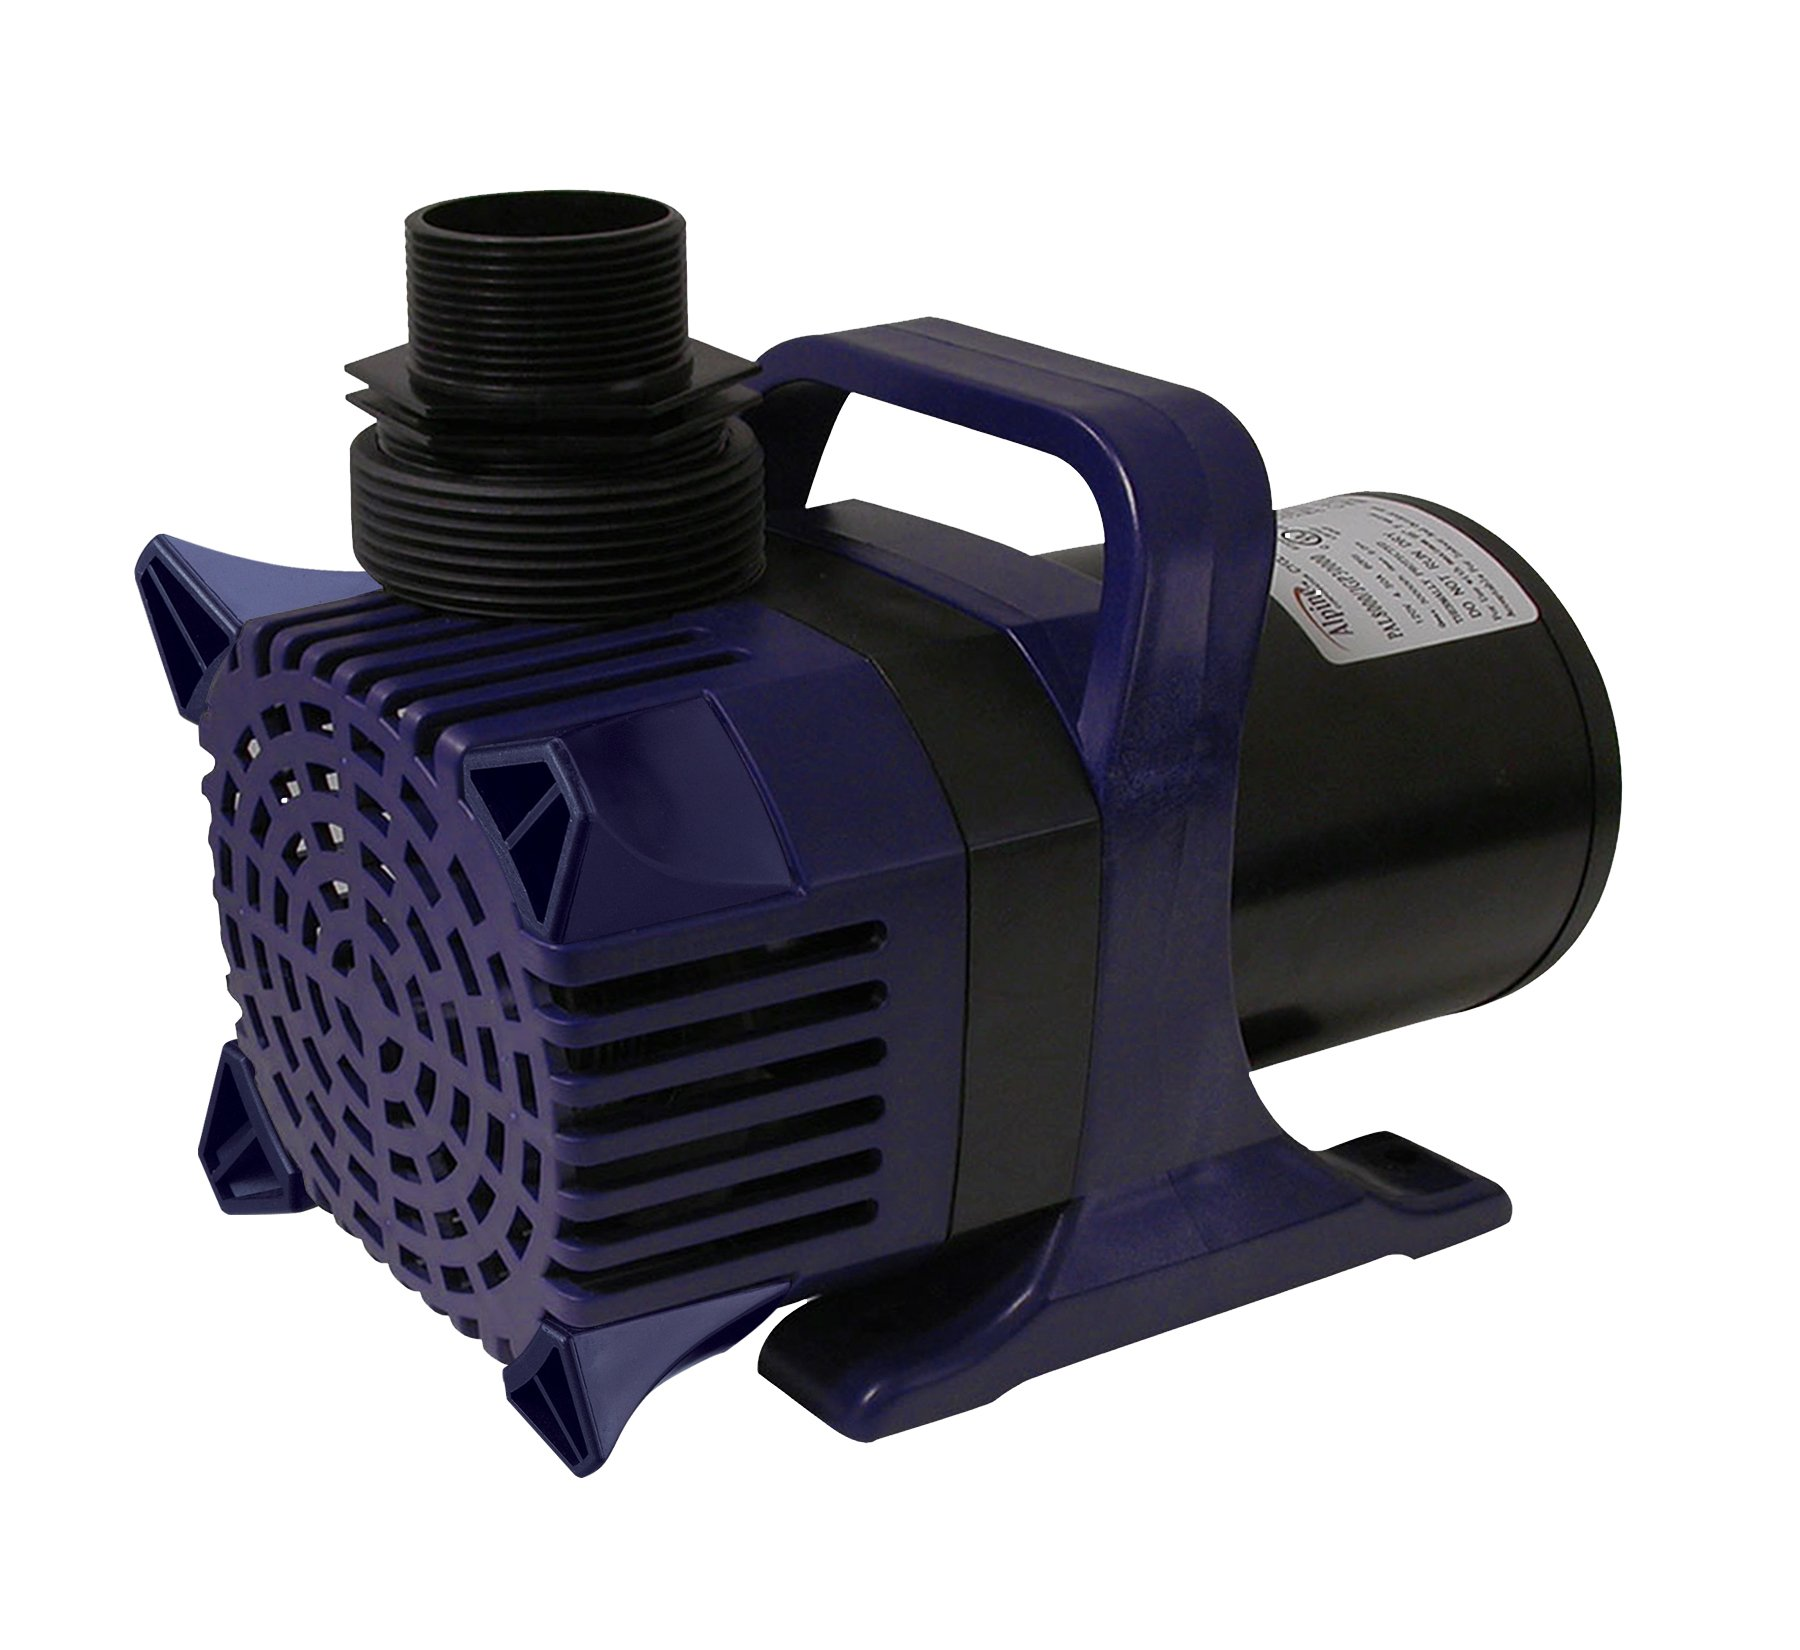 Alpine Cyclone 8000GPH Waterfall & Pond Pump 33ft Power Cord PAL8000 by Alpine Corporation